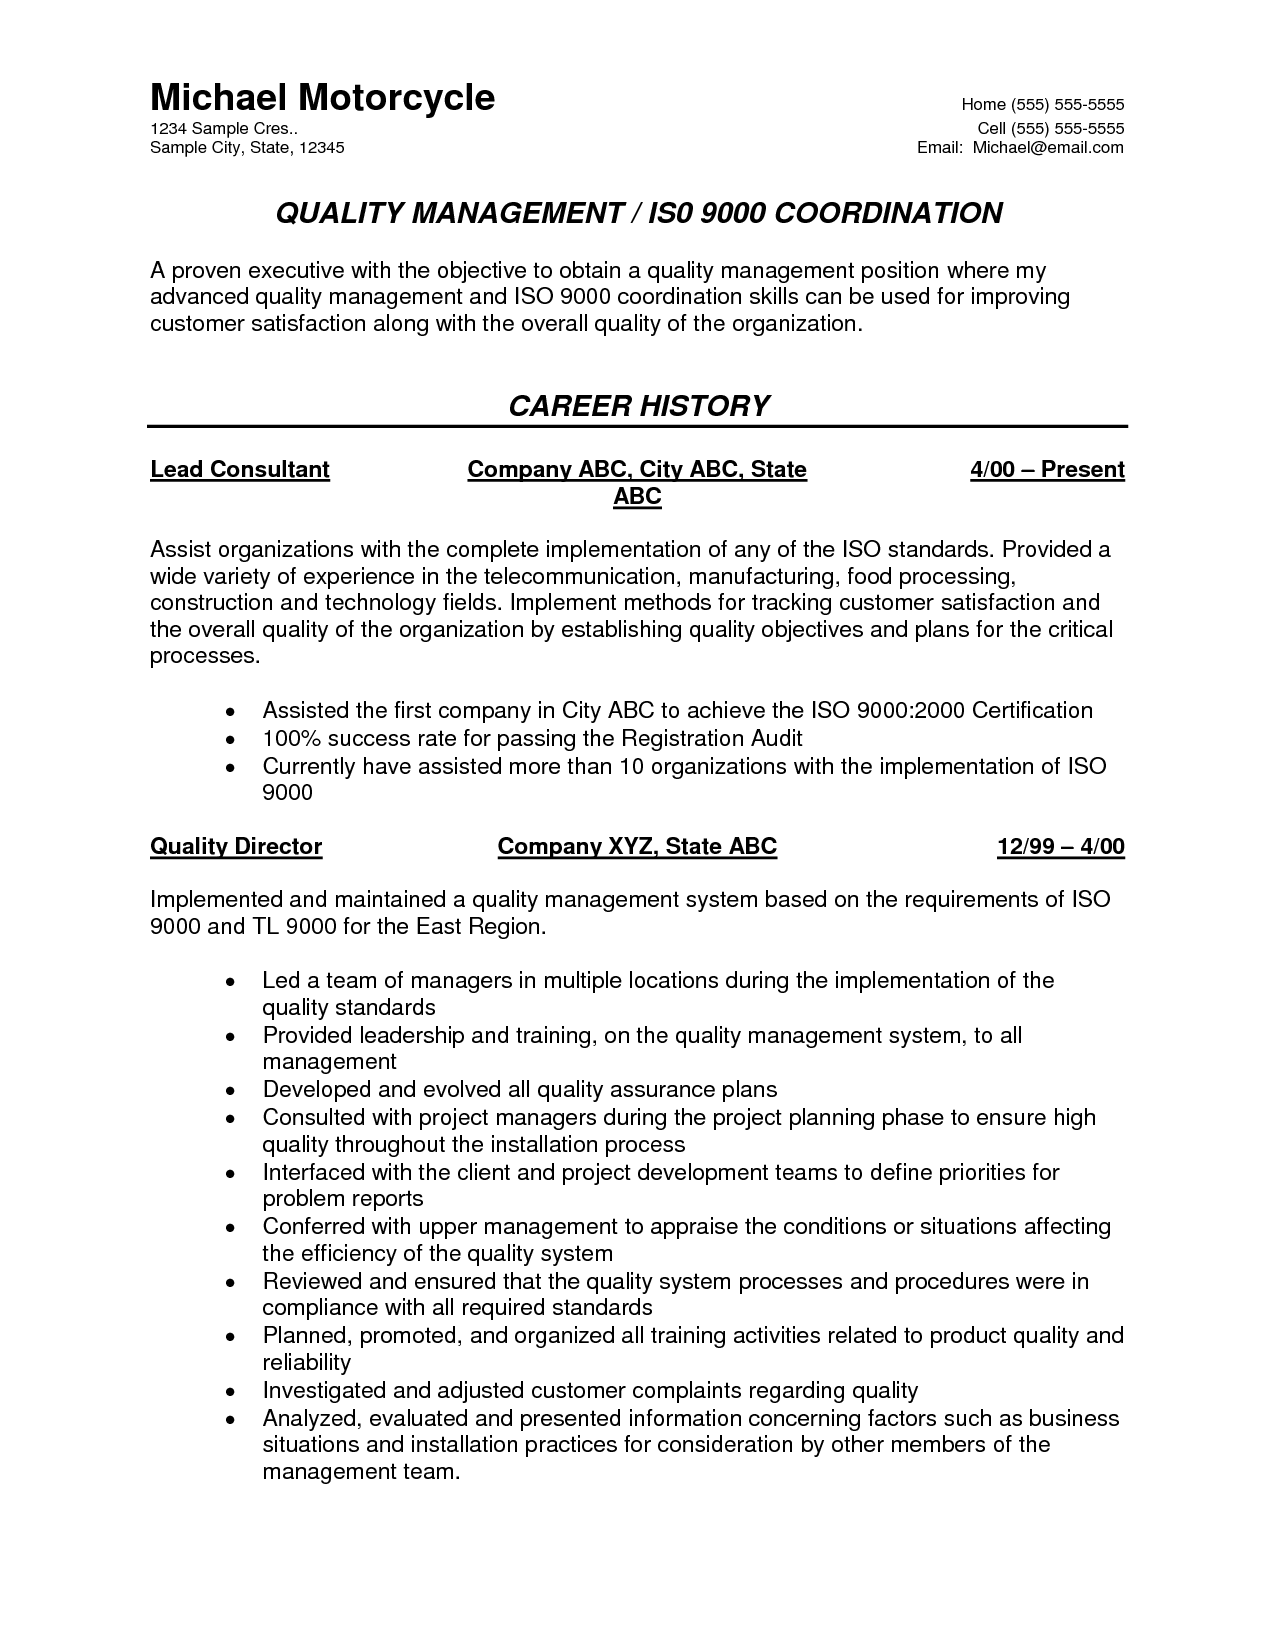 Resume Format Quality Control Engineer Resume Format Best Resume Format Resume